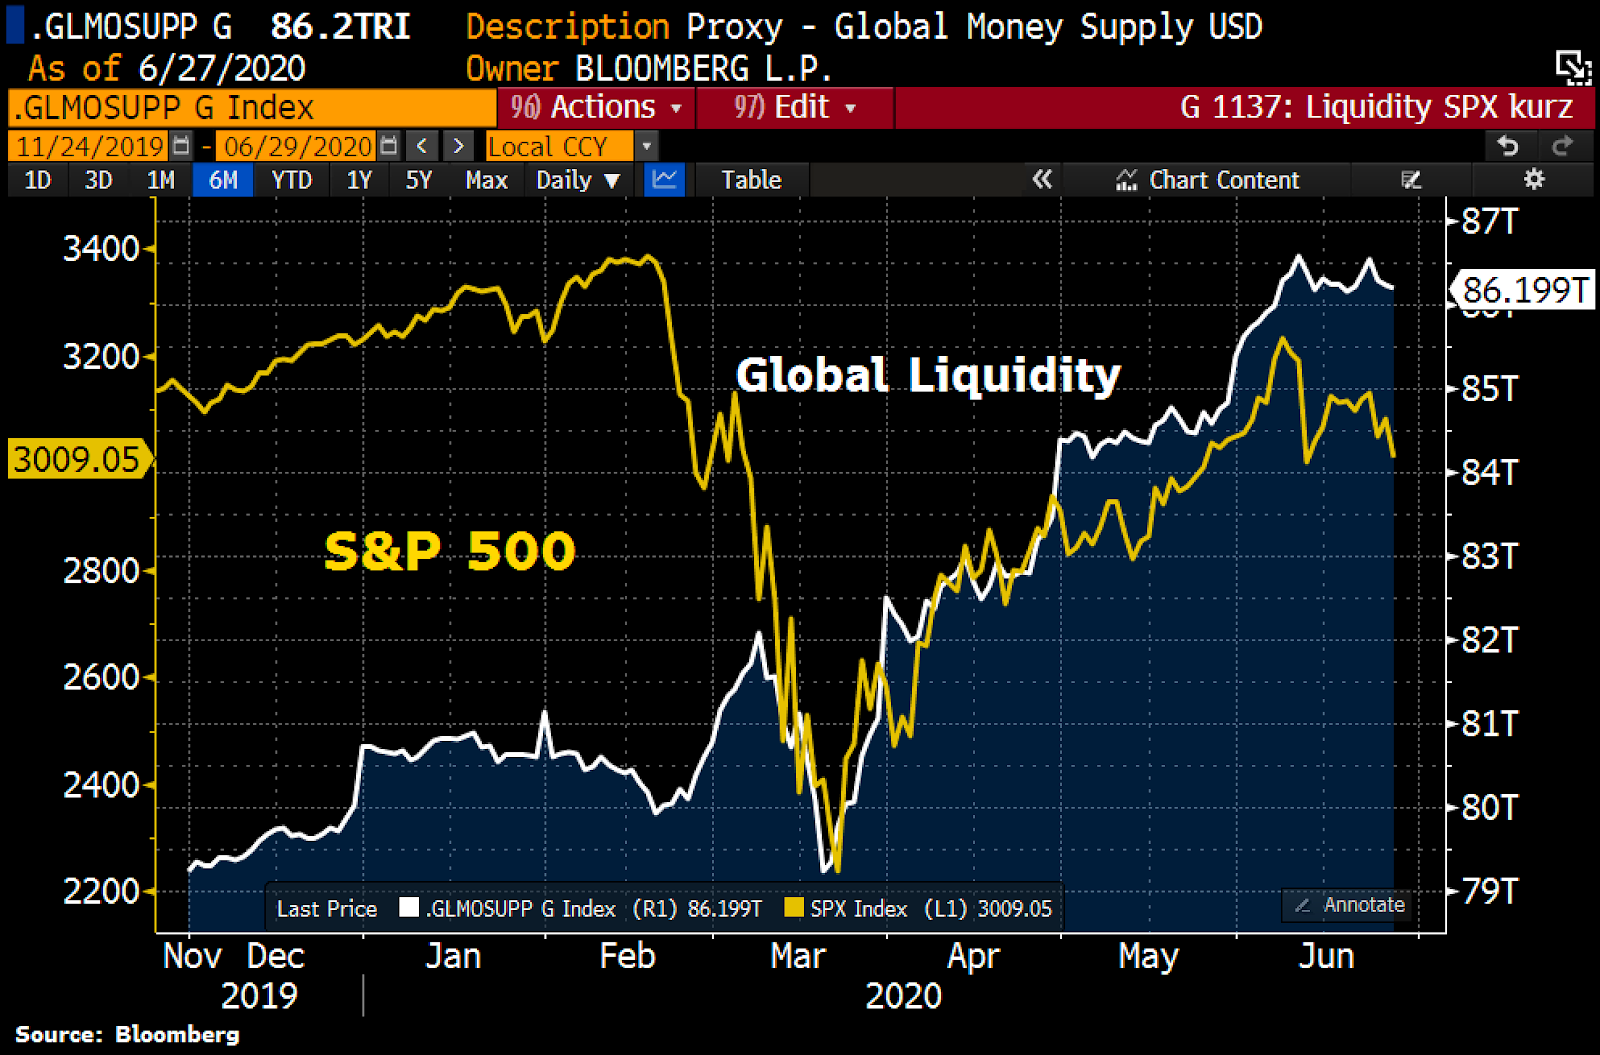 Correlation between the U.S. stock market and global liquidity. Source: Holger Zschaepitz, Bloomberg